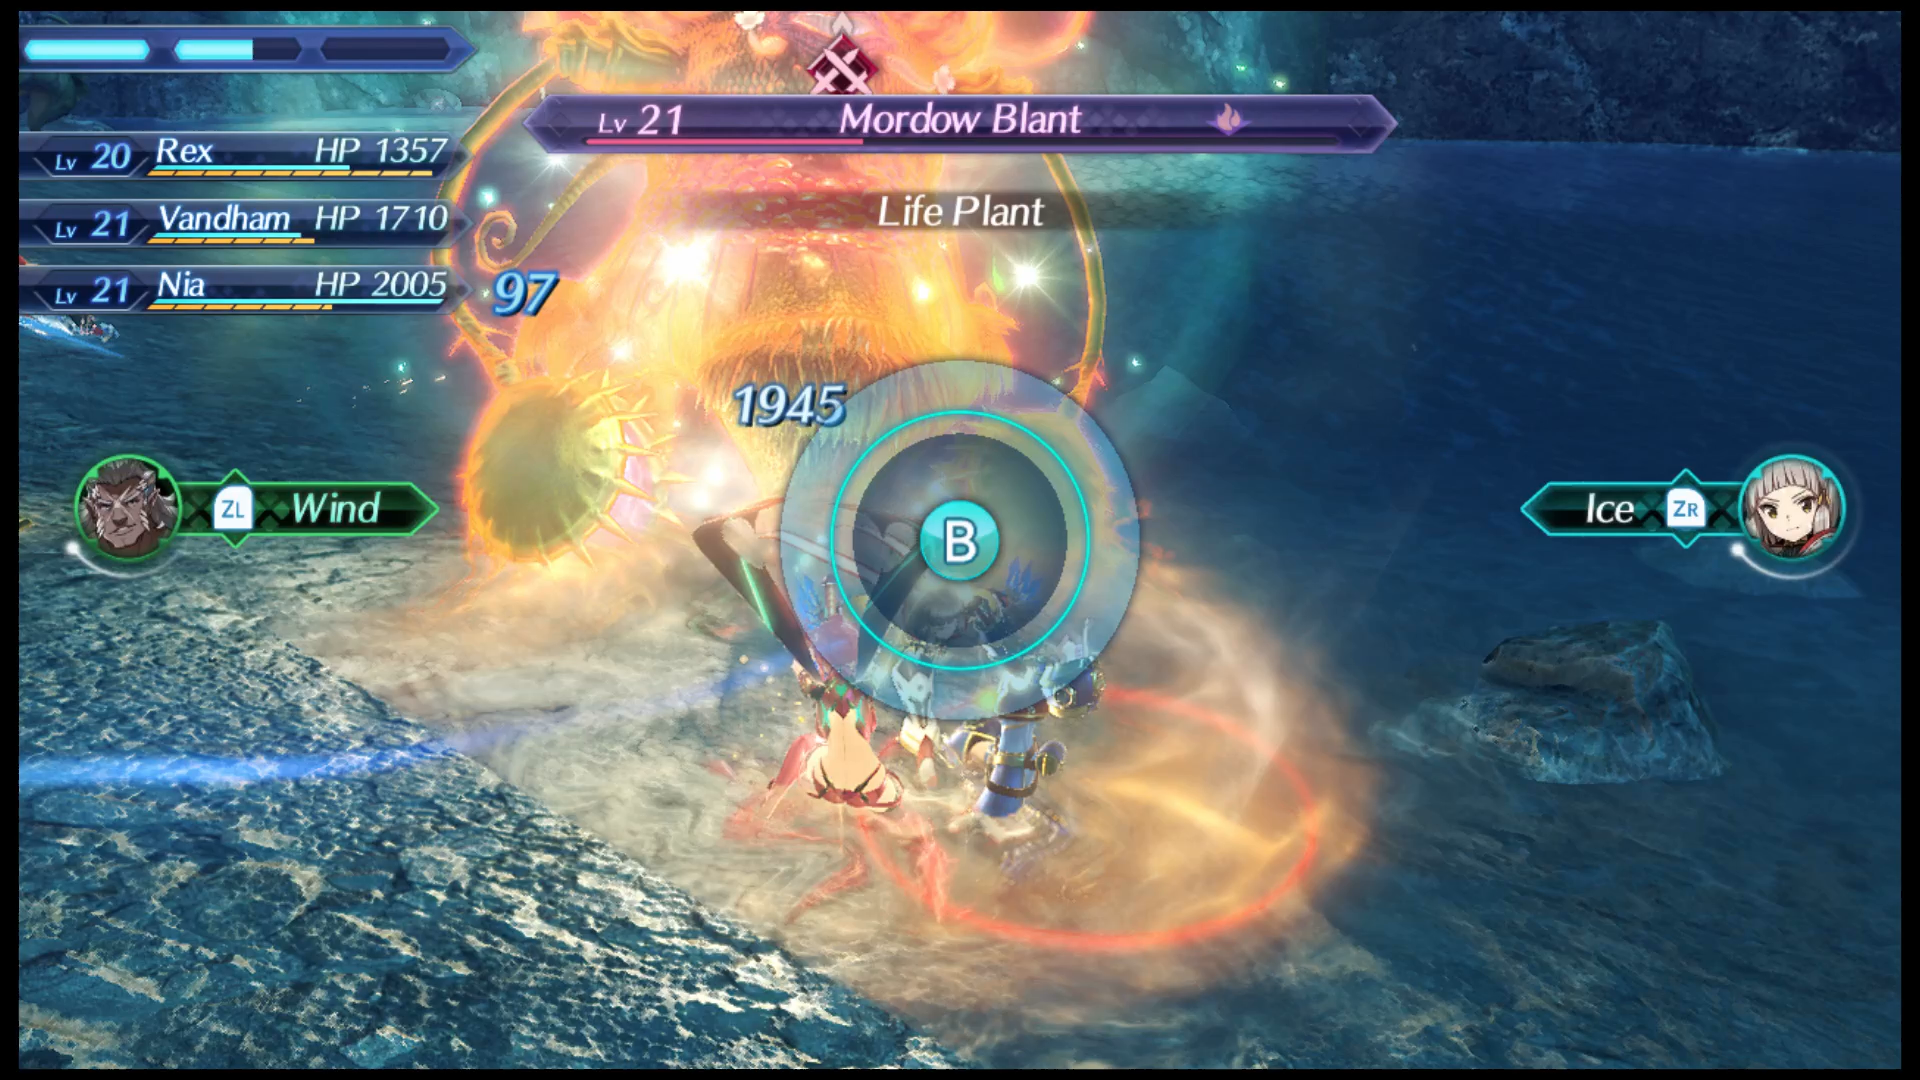 Xenoblade Chronicles 2 Guide Tips And Tricks Beginners Switch English Us These Are The Core Basics Of Combat To But Make Sure Check Out Our Full In Depth For A